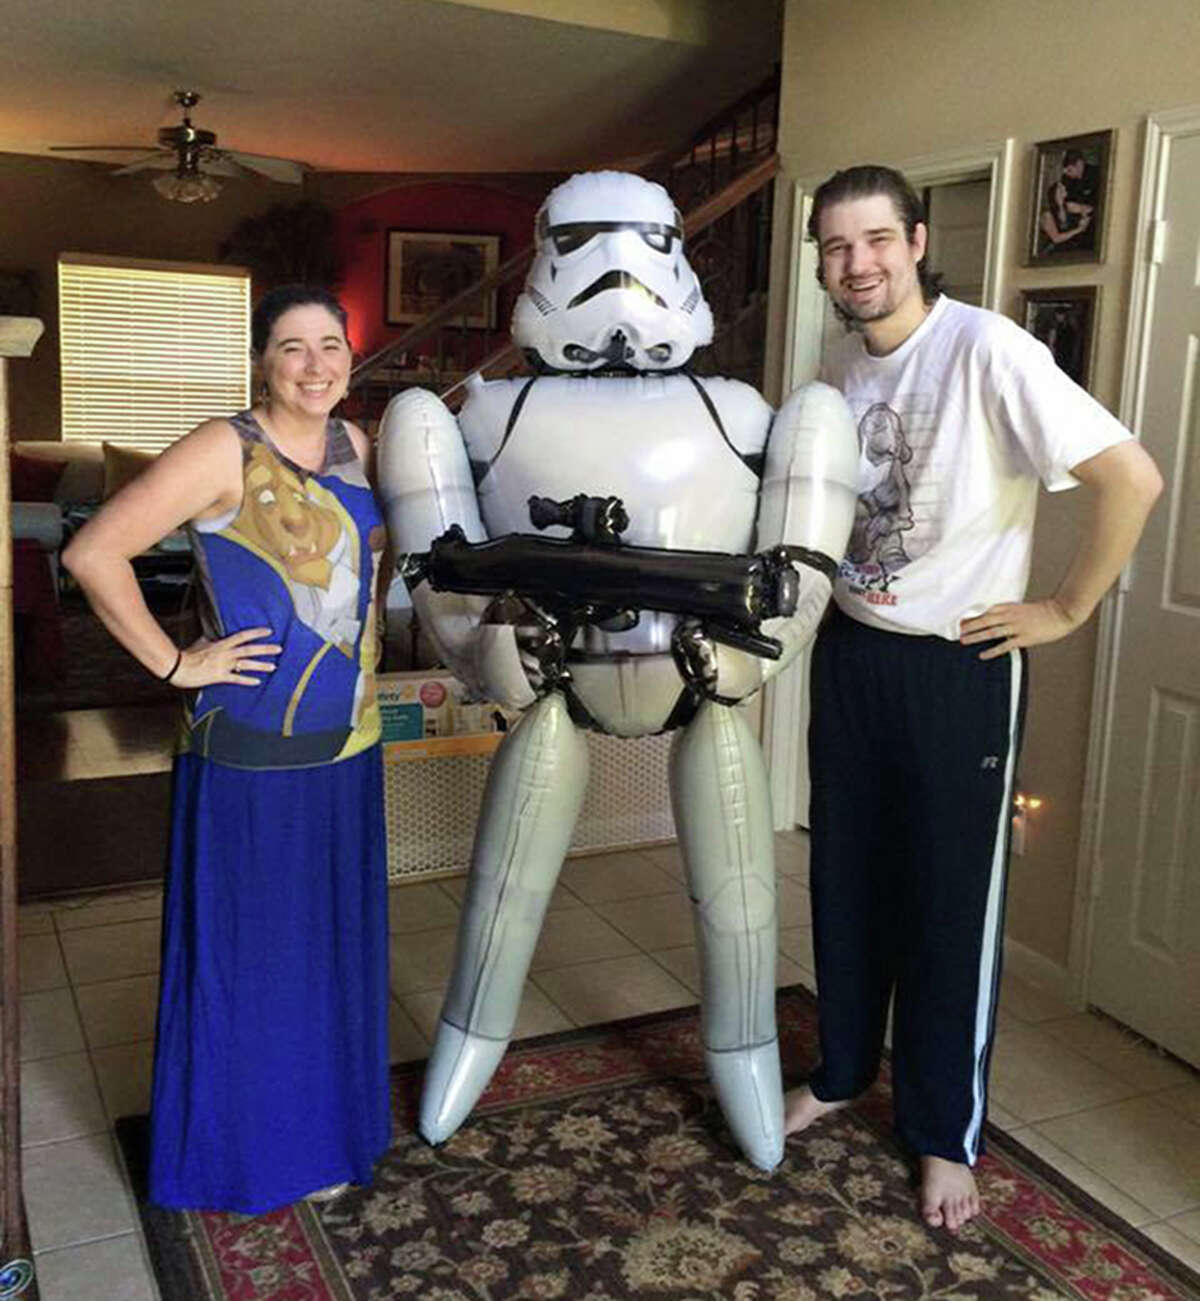 Daniel Fleetwood's story first went viral after posting a photo to social media saying that his dying wish was to watch the new Star Wars movie since it was likely he wouldn't make it to the release date. On Nov. 5 he was granted his wish, and was able to watch the movie in his home along with officials from the studio. He passed shortly after on Nov. 10 at the age of 31 after battling a rare tissue cancer.